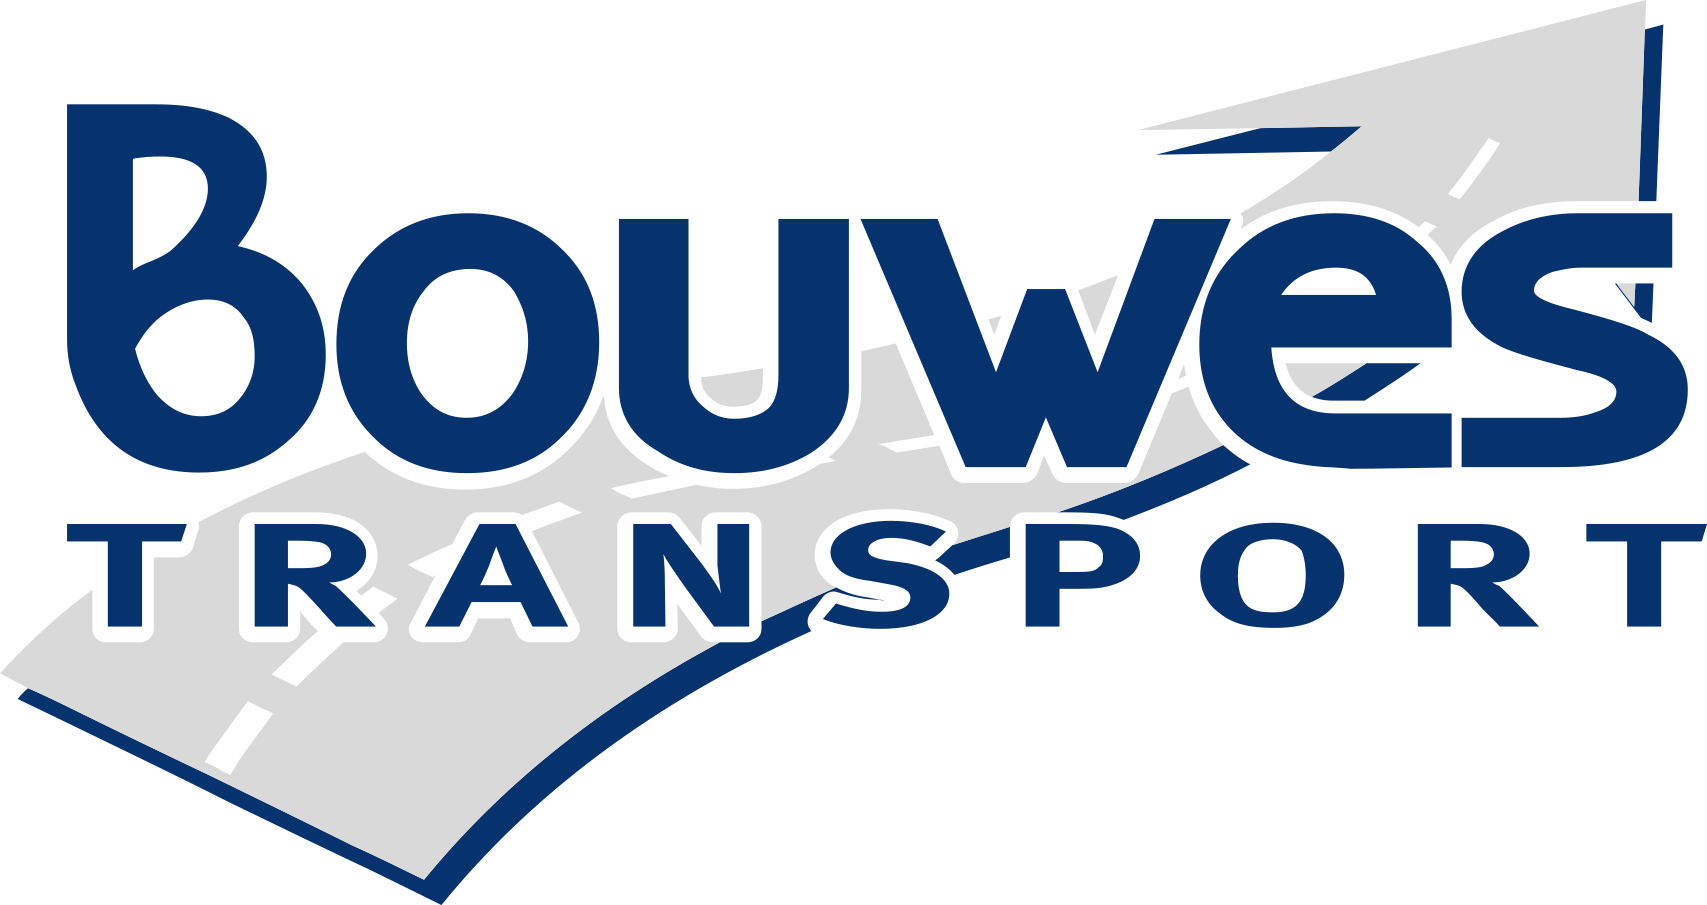 Bouwestransport